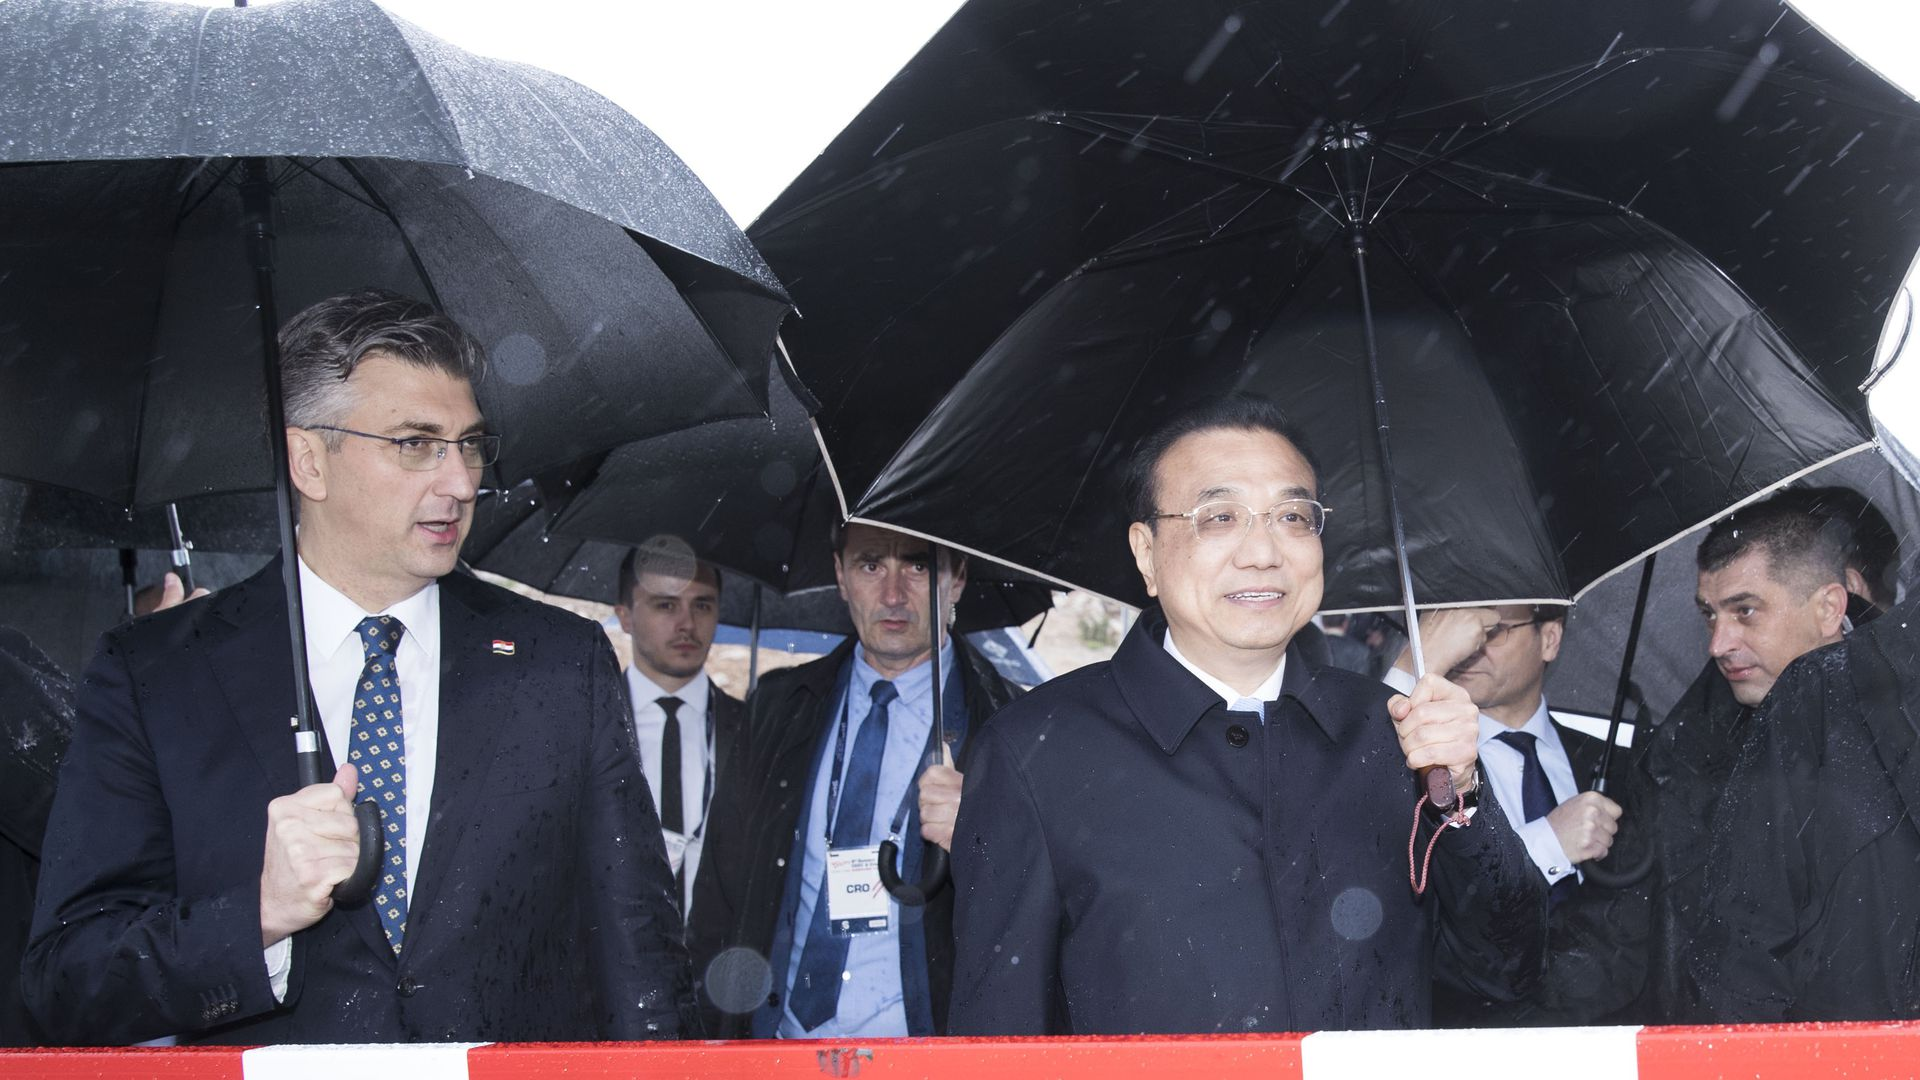 Chinese Premier Li Keqiang and Croatia'd Andrej Plenkovic on a bridge in the rain